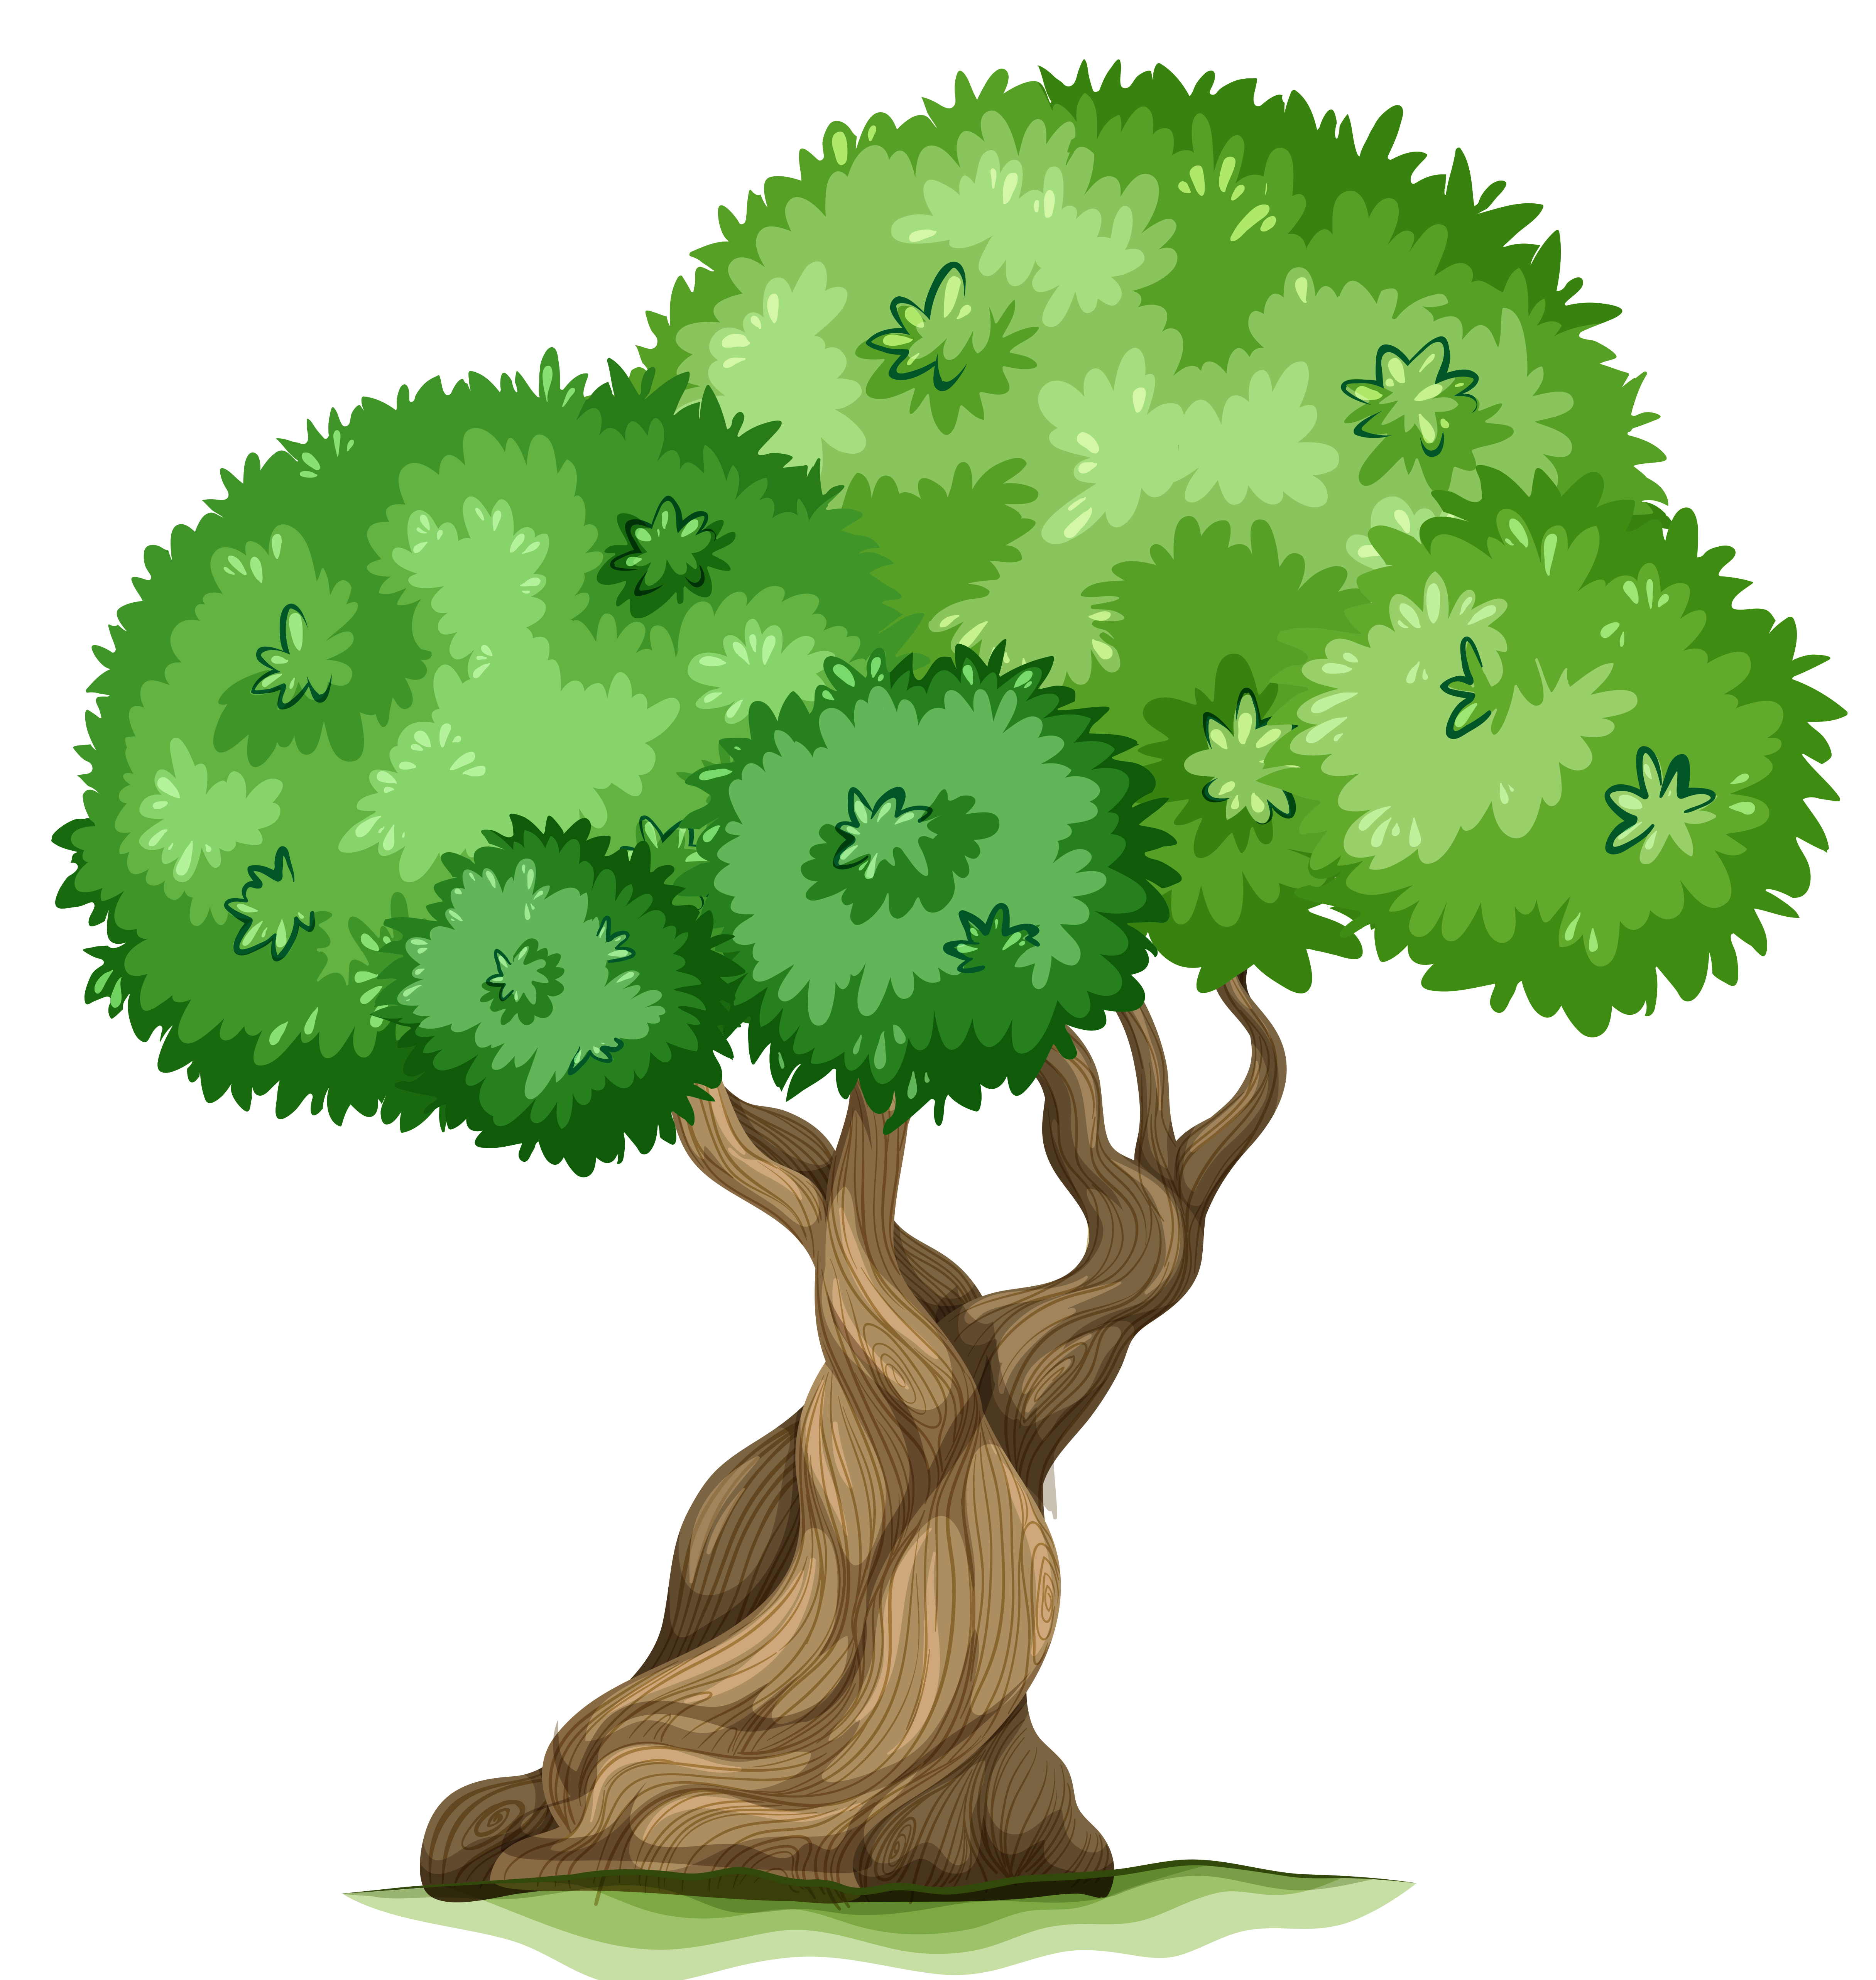 Png clipart treeClipartFest.